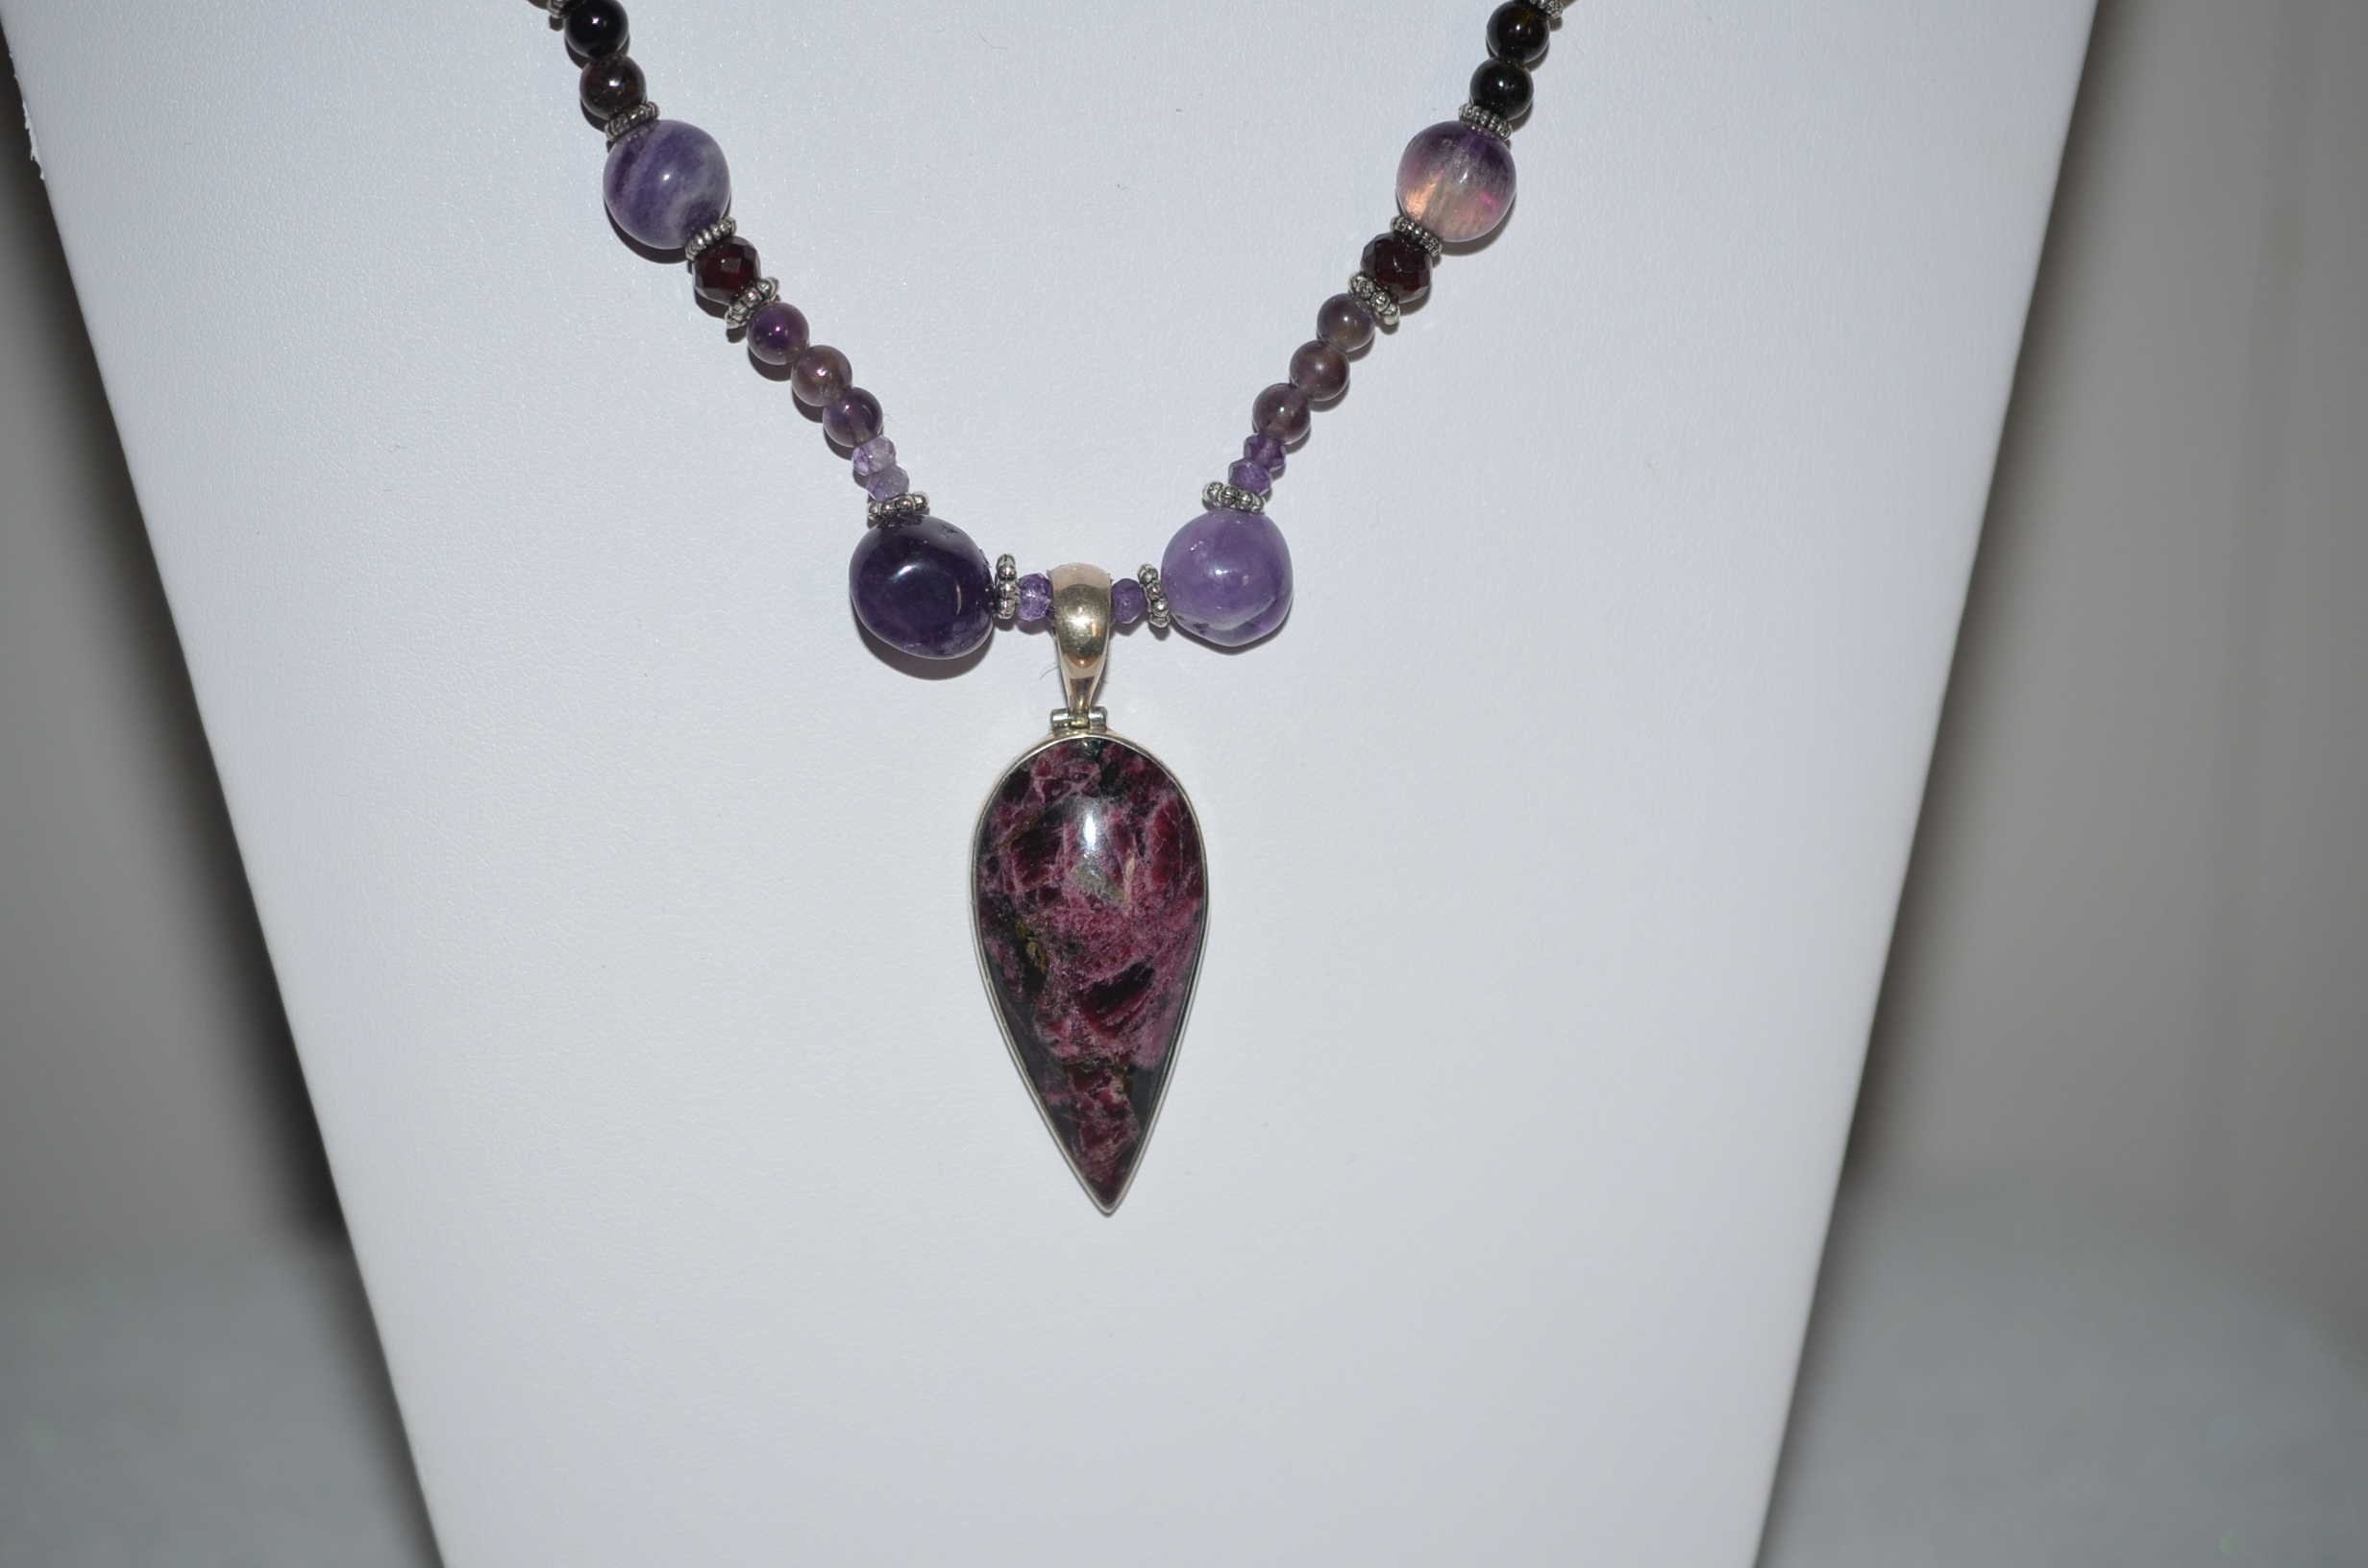 Purple Stone Necklace Charoite Necklace Beaded Necklace Sugilite Necklace Labradorite Necklace